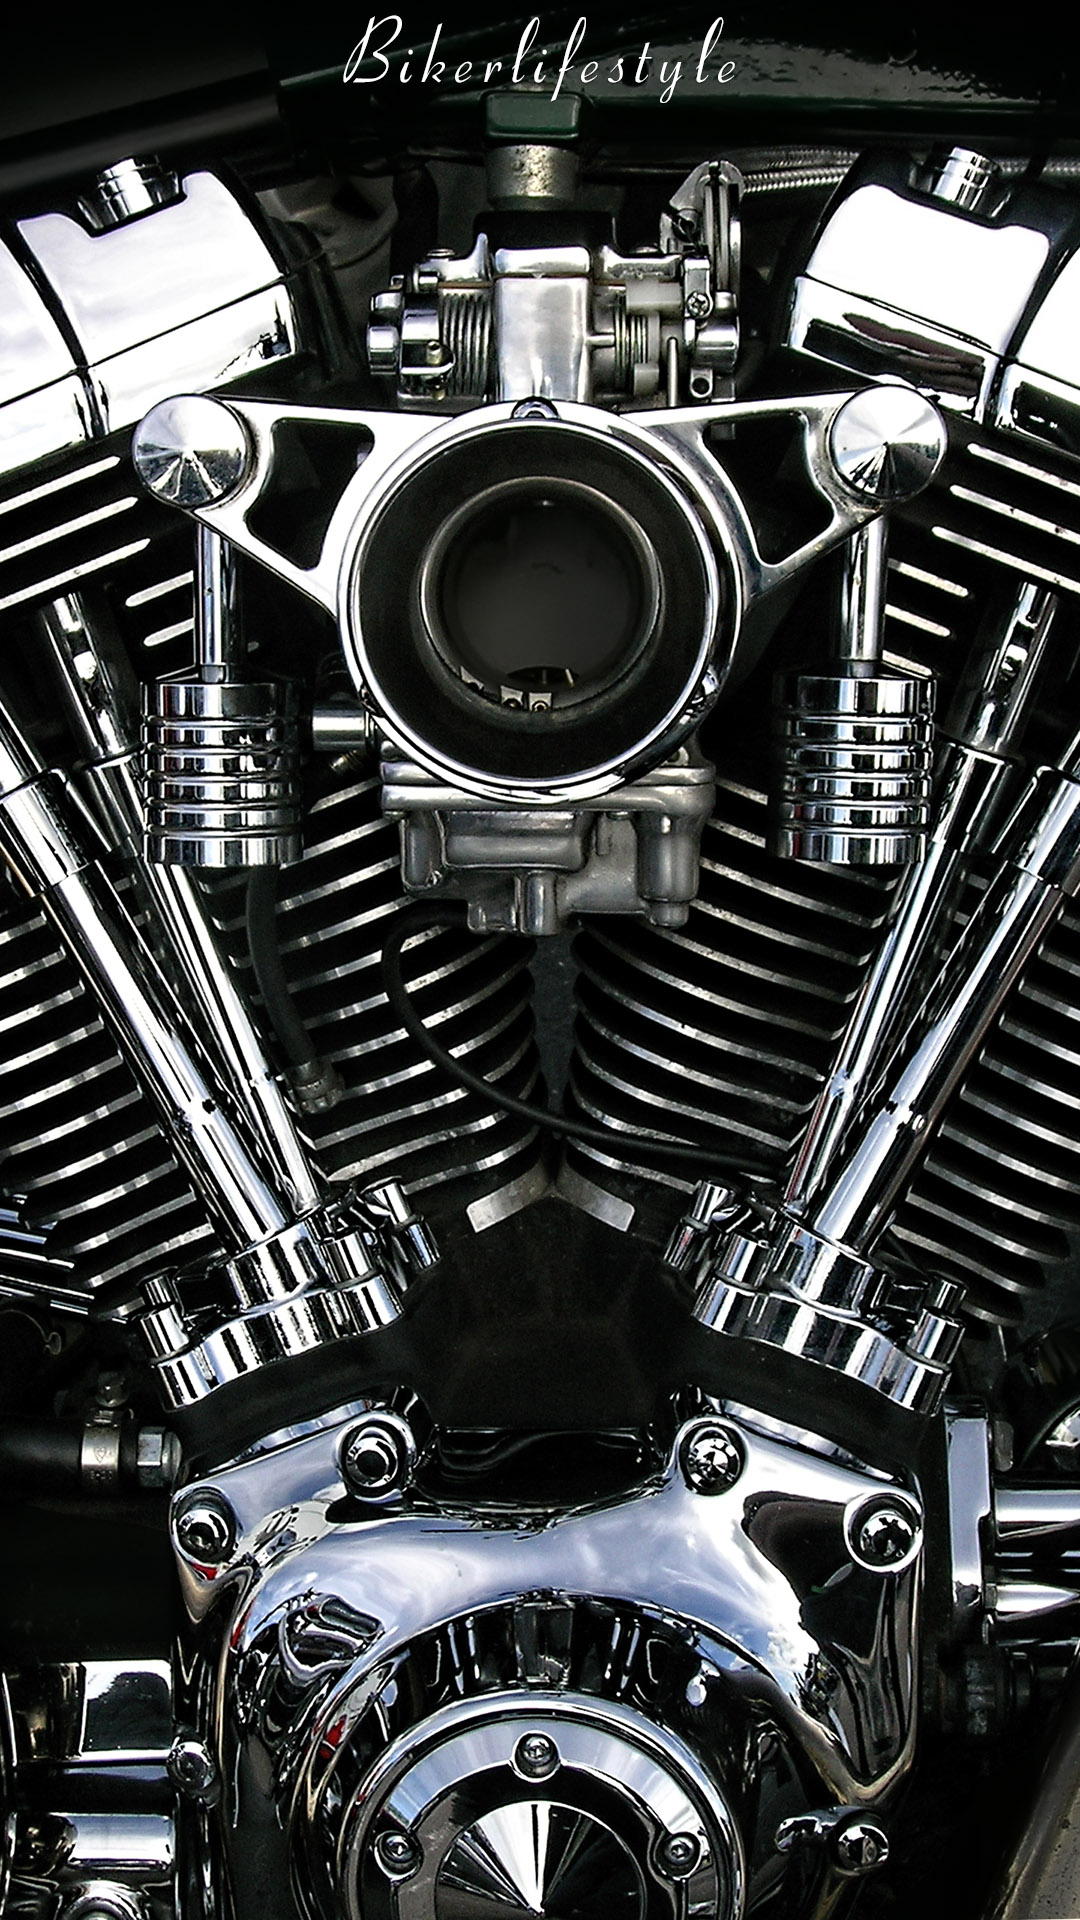 Biker Wallpaper At Bikerlifestyle